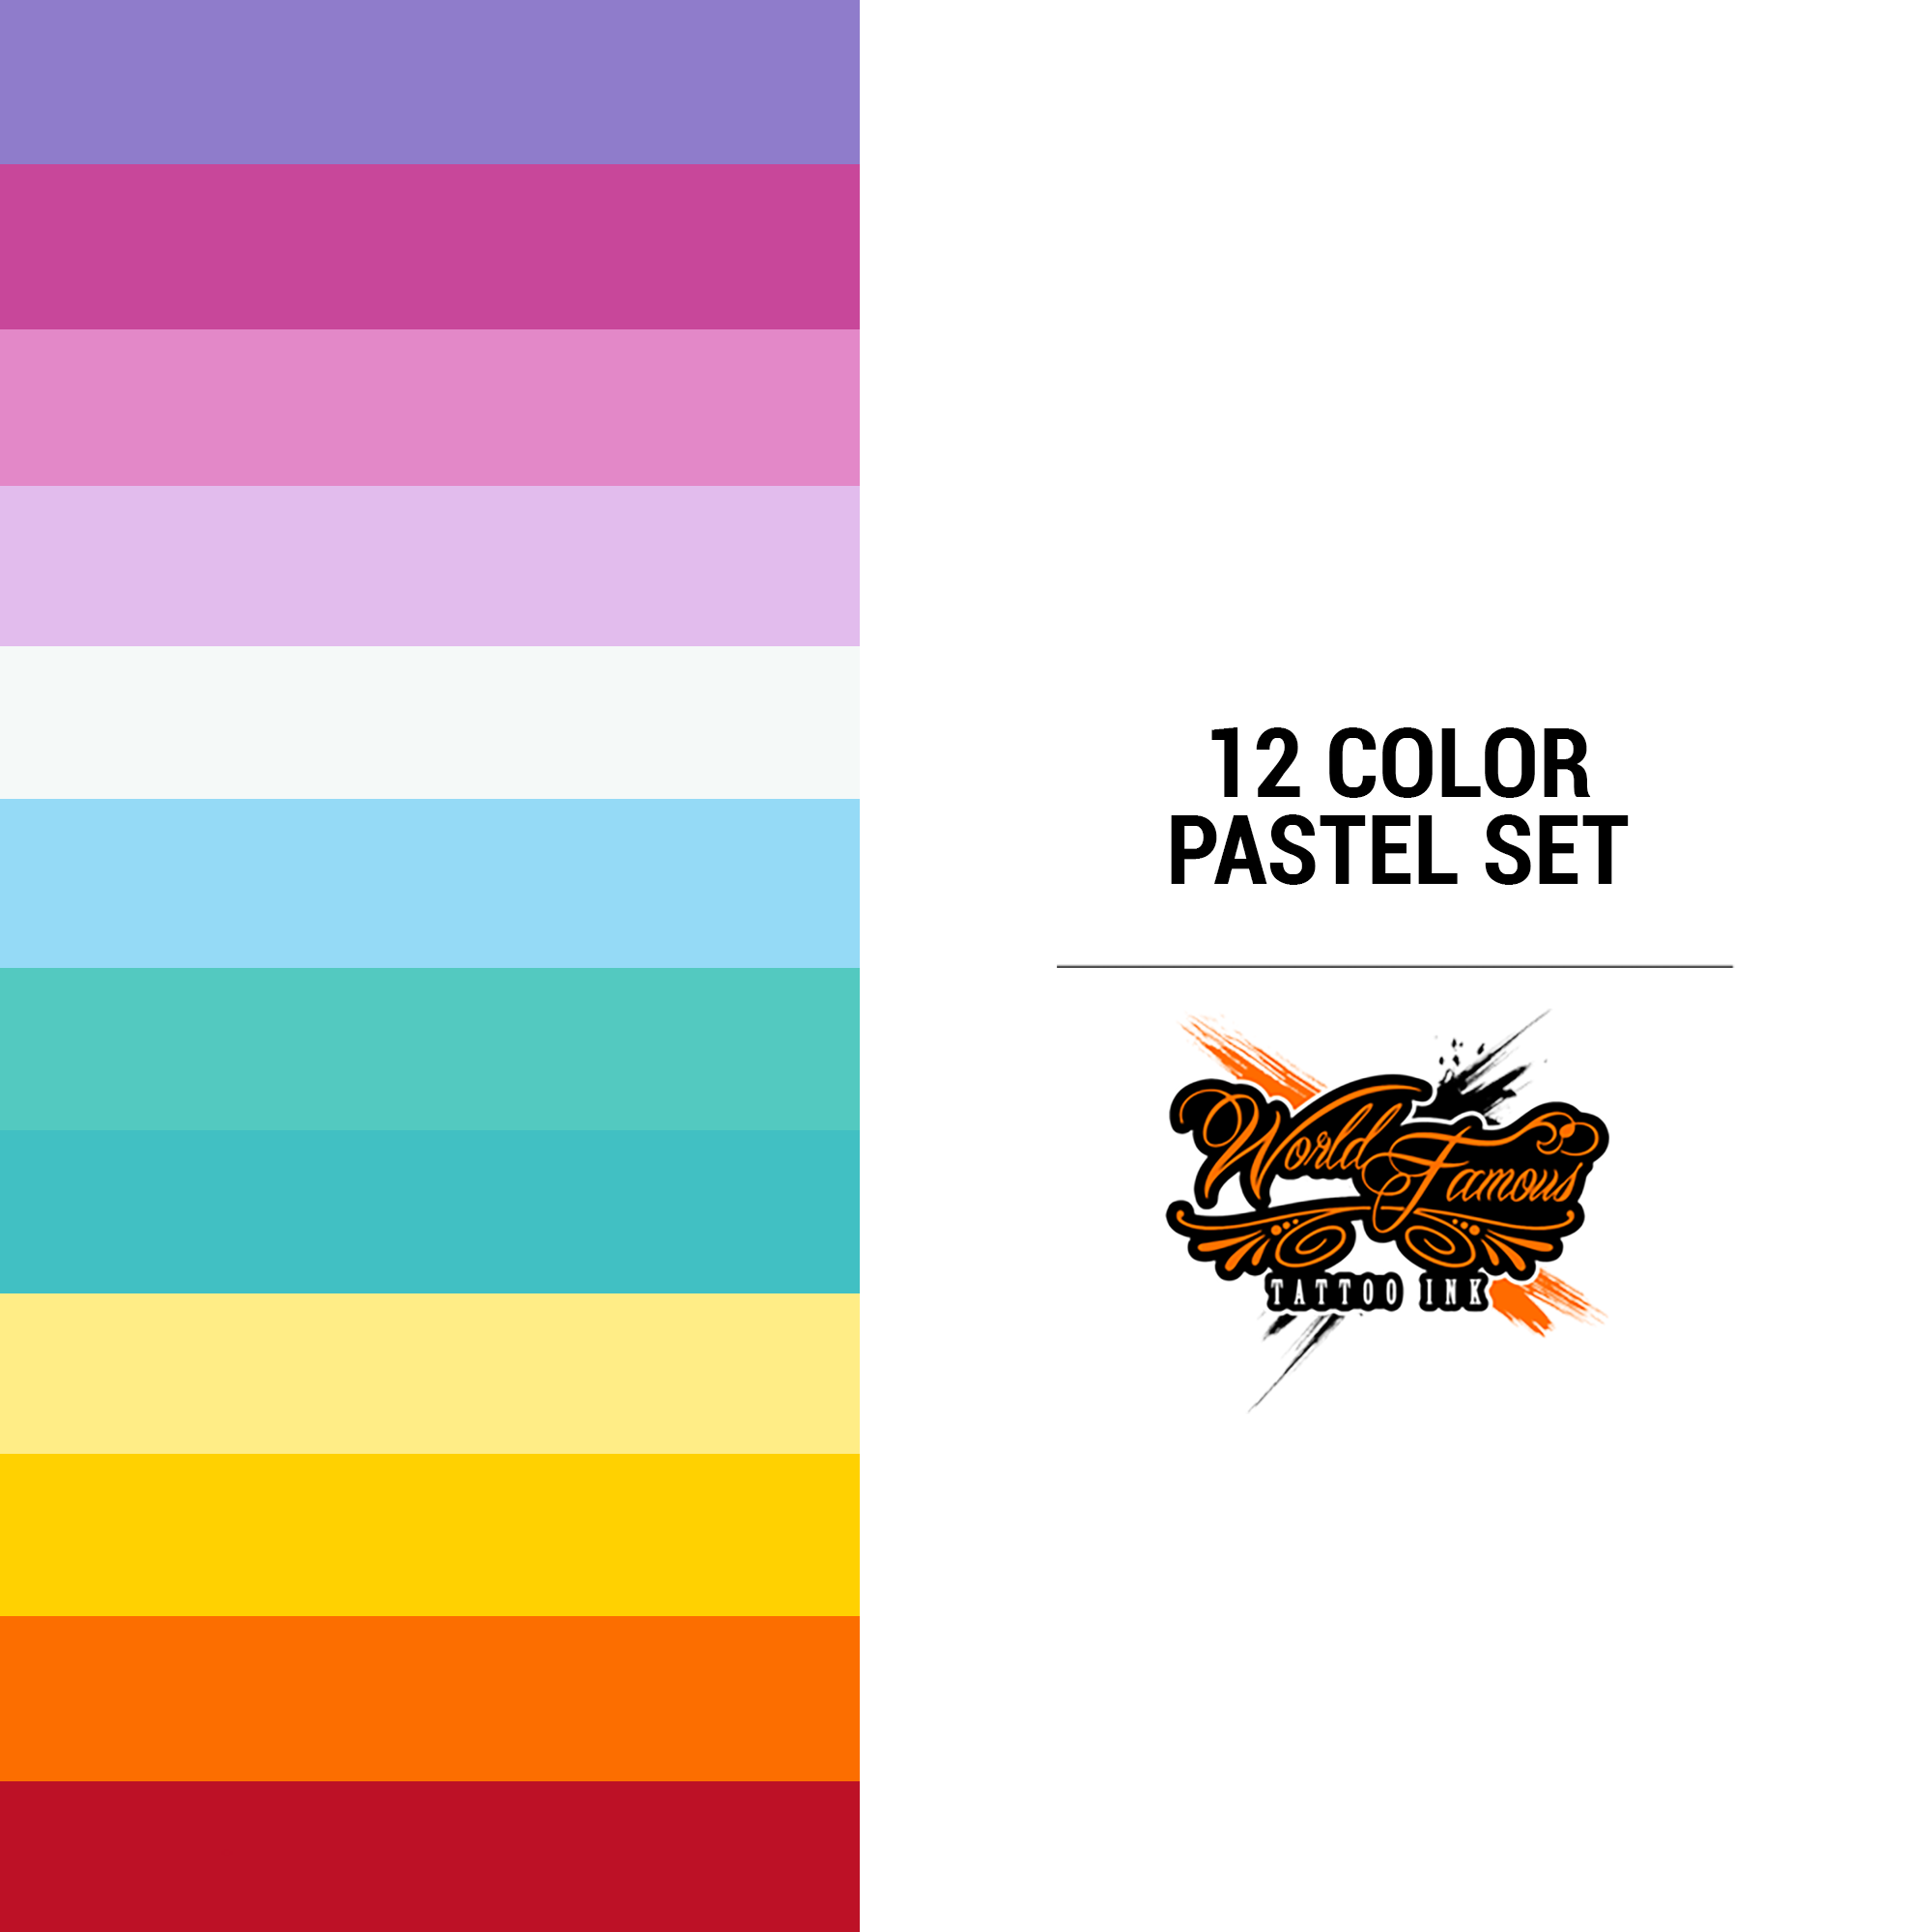 WF 12 Color Pastel Set 1 oz